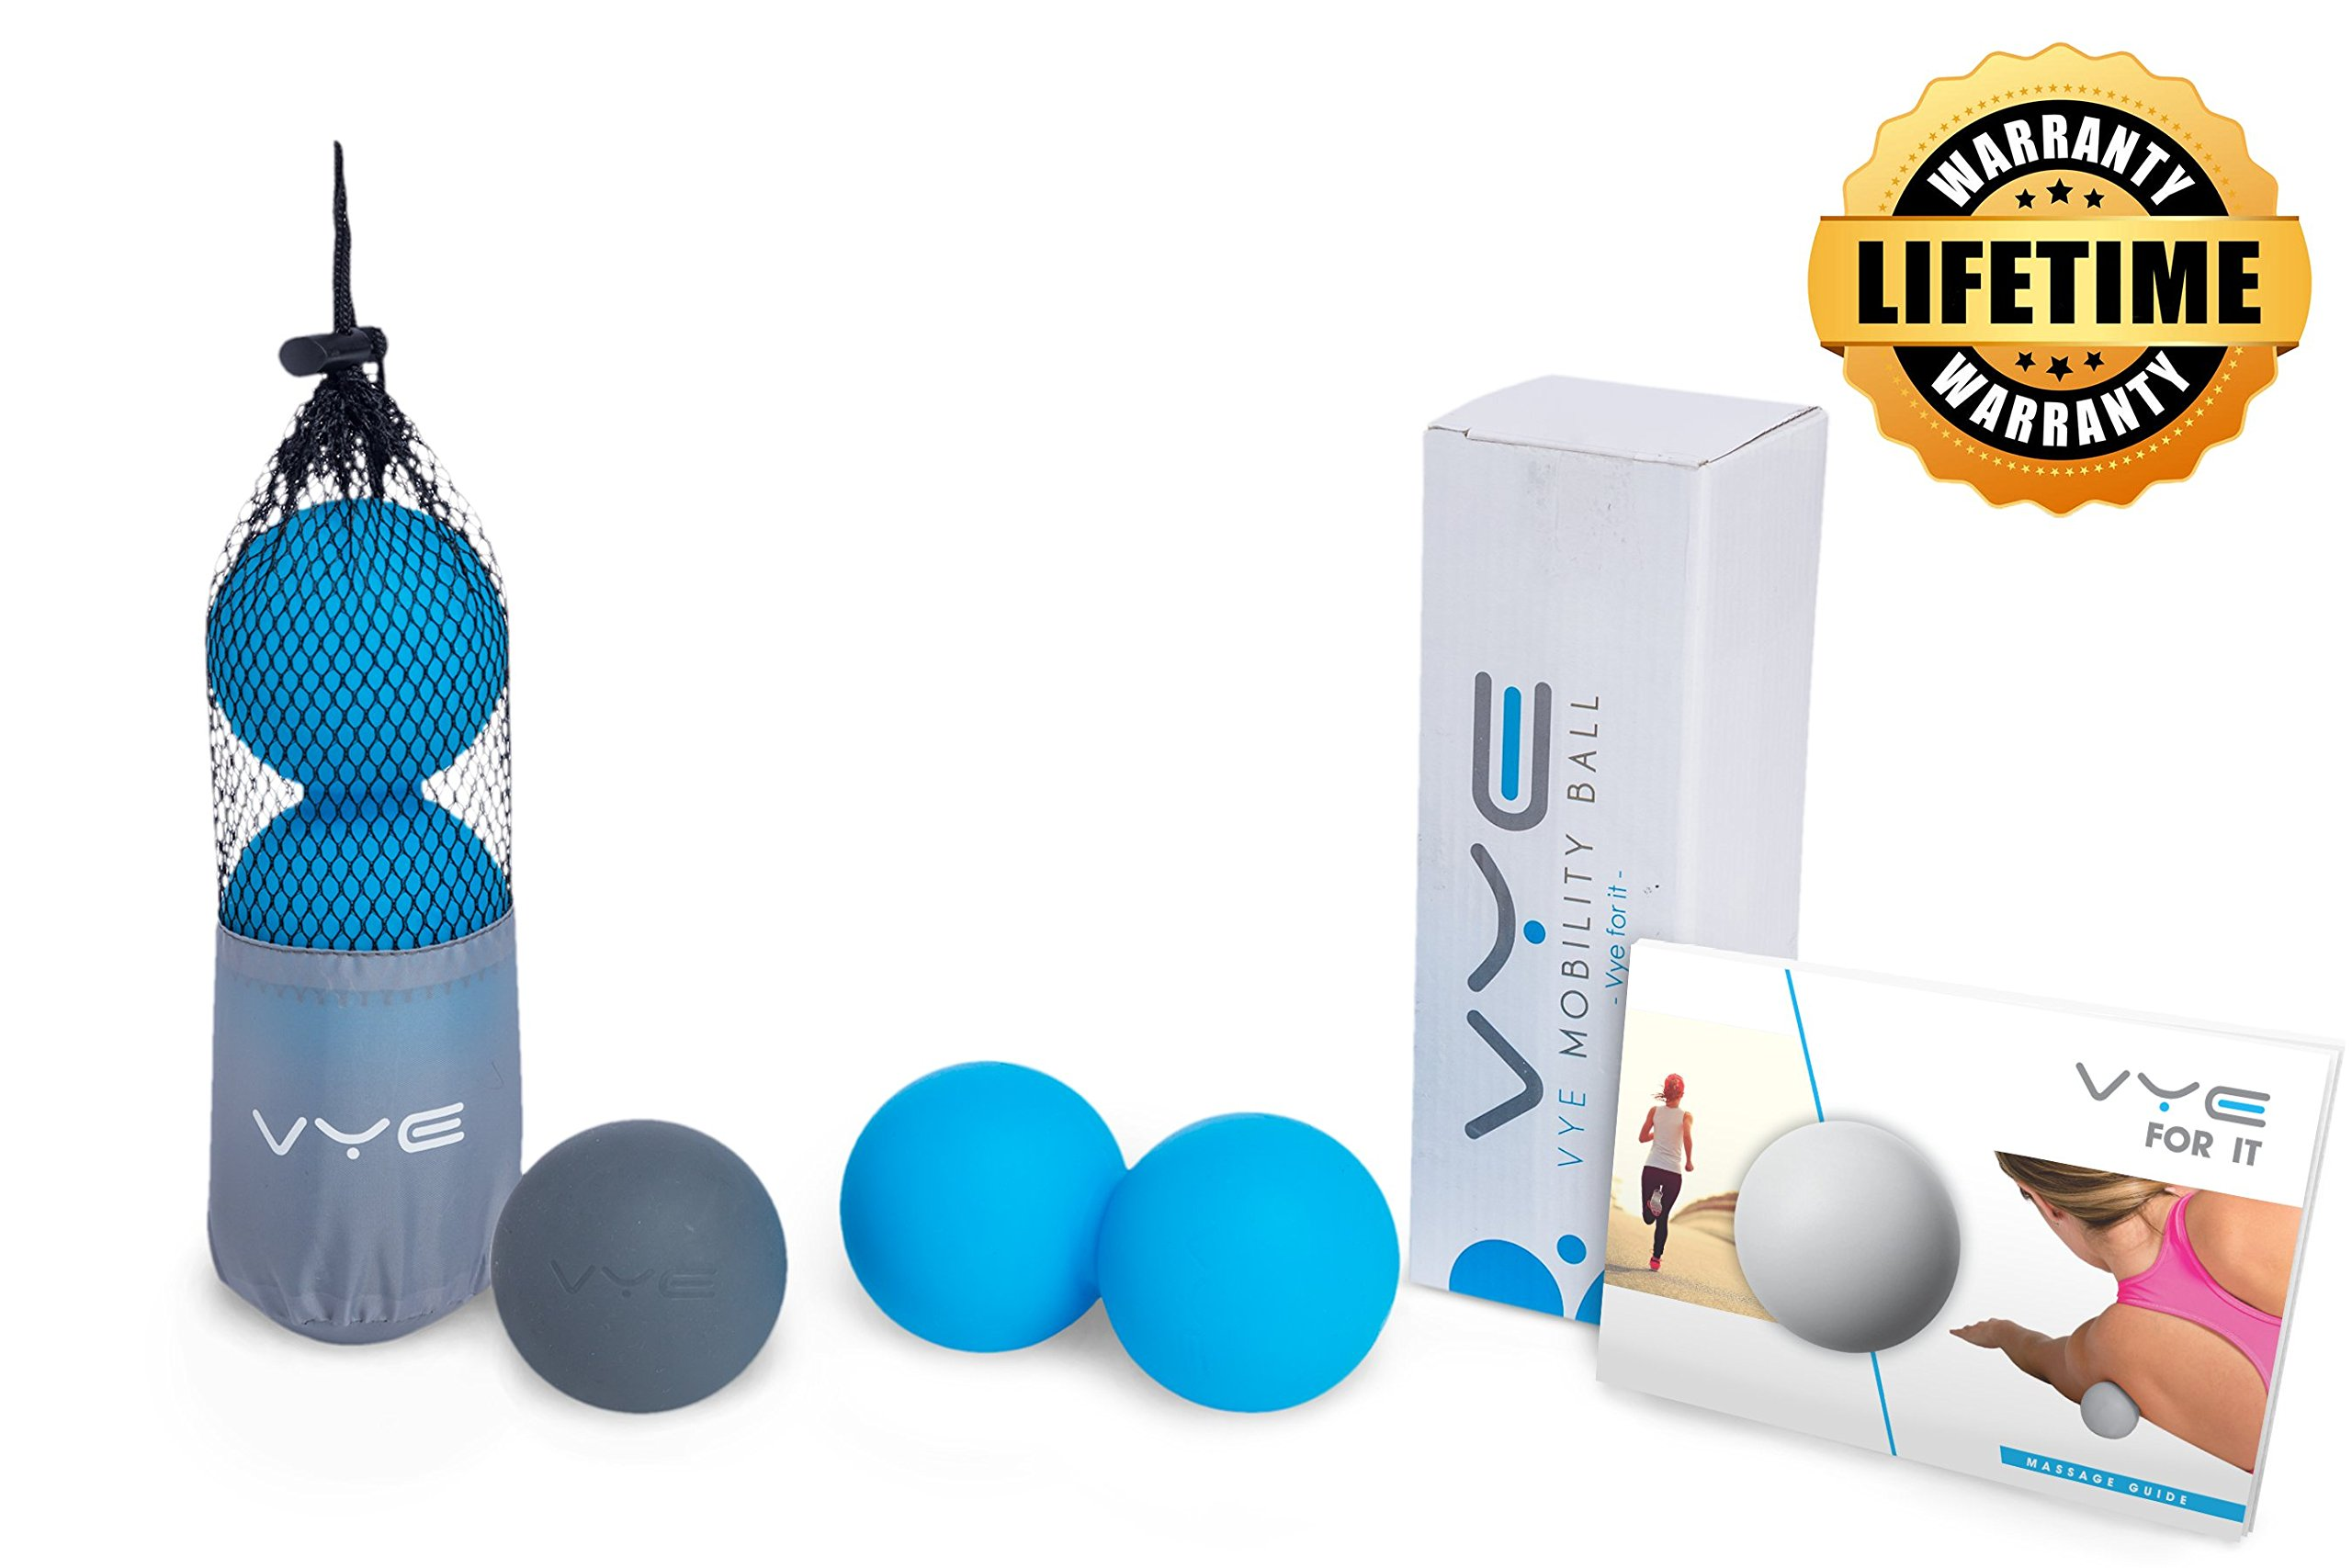 Peanut Mobility Ball & Lacrosse Ball Set for Myofascial Release Therapy | Deep Tissue, Trigger Point, Plantar Fasciitis & Massage | Finally Relieve Pain, Knots & Tightness | FREE E-Book!